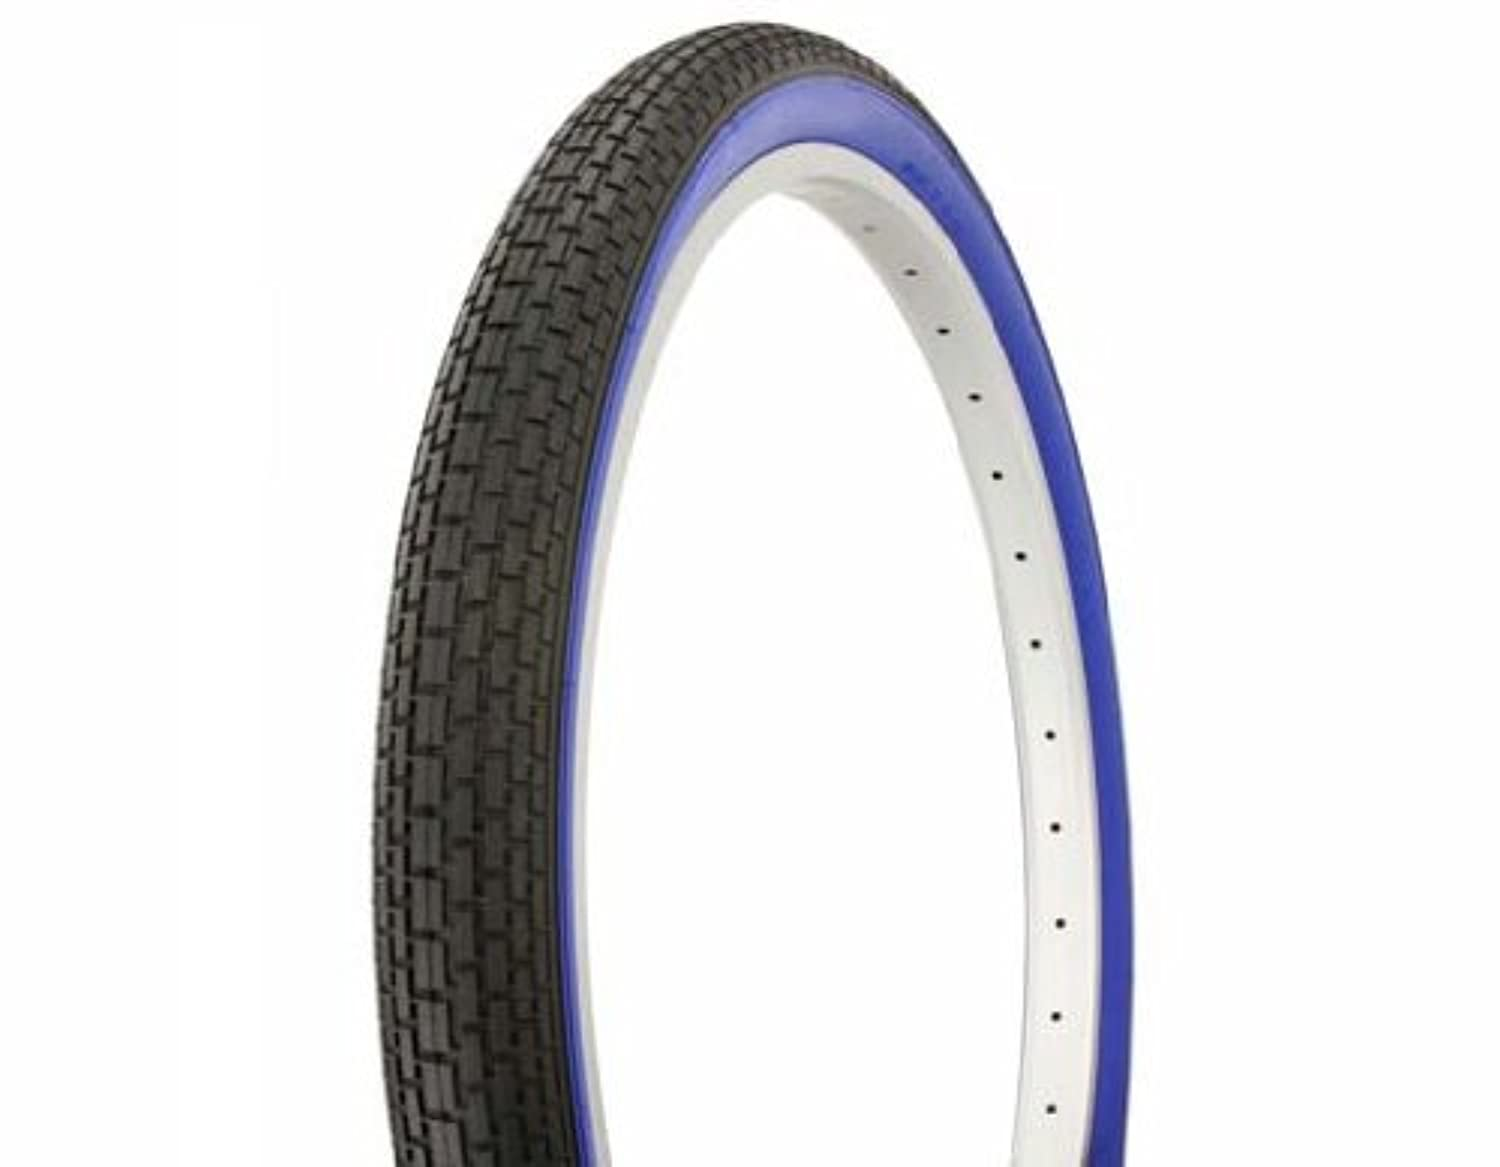 Tire Duro 26 x 2.125 Black/Blue Side Wall HF-120A. Bicycle tire, bike tire, beach cruiser bike tire, cruiser bike tire, chopper bike tire, trike tire, tricycle tire by Lowrider